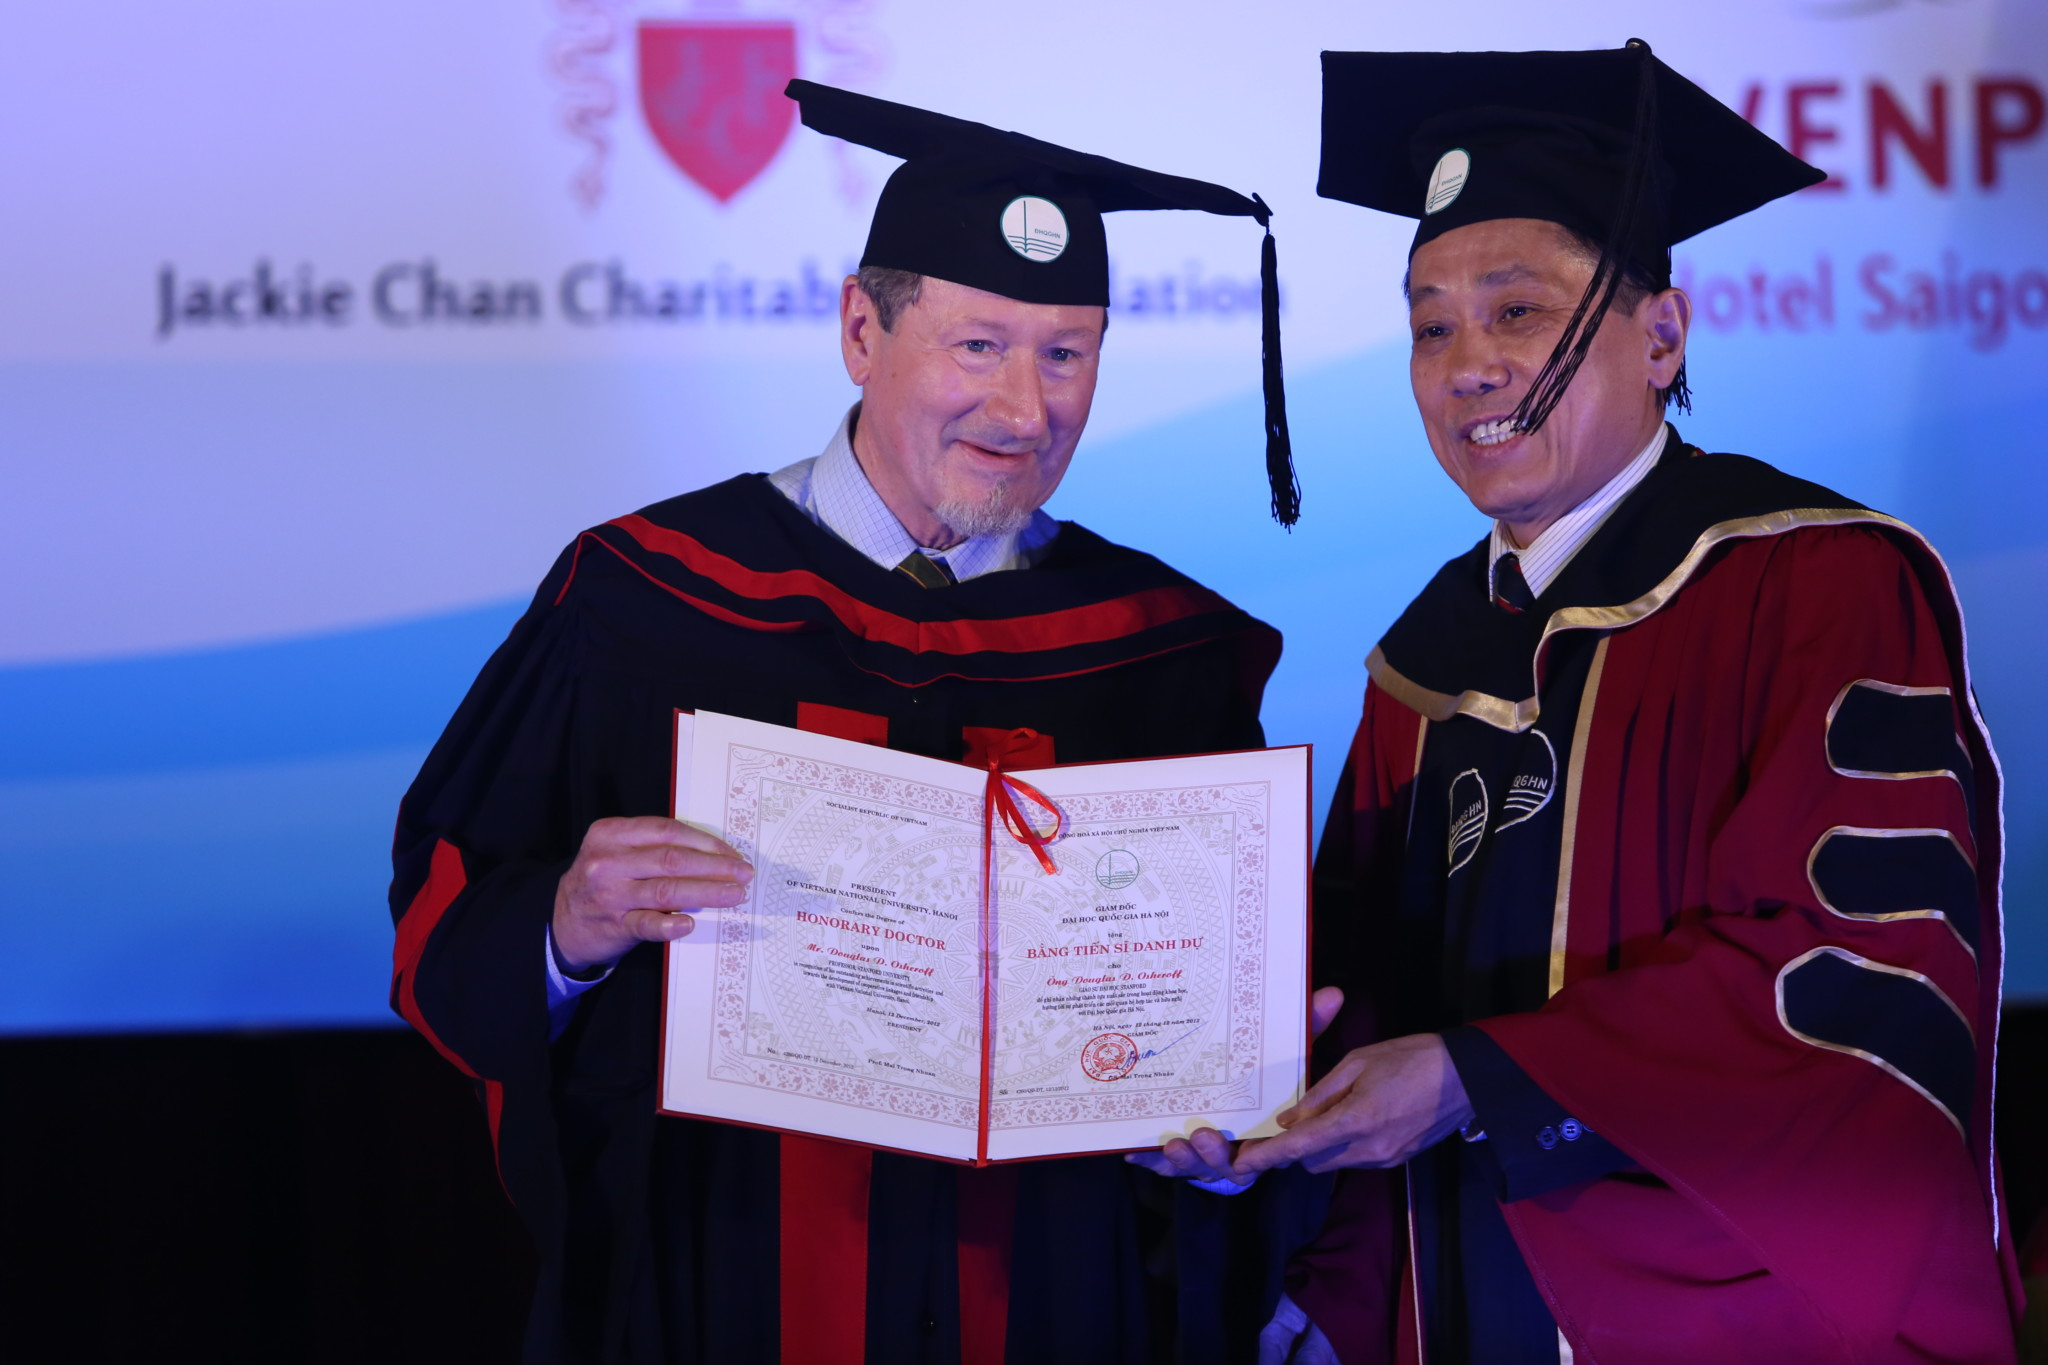 Physics Nobel Laureate Prof. Douglas D. Osheroff being awarded an honorary doctorate degree in Hanoi